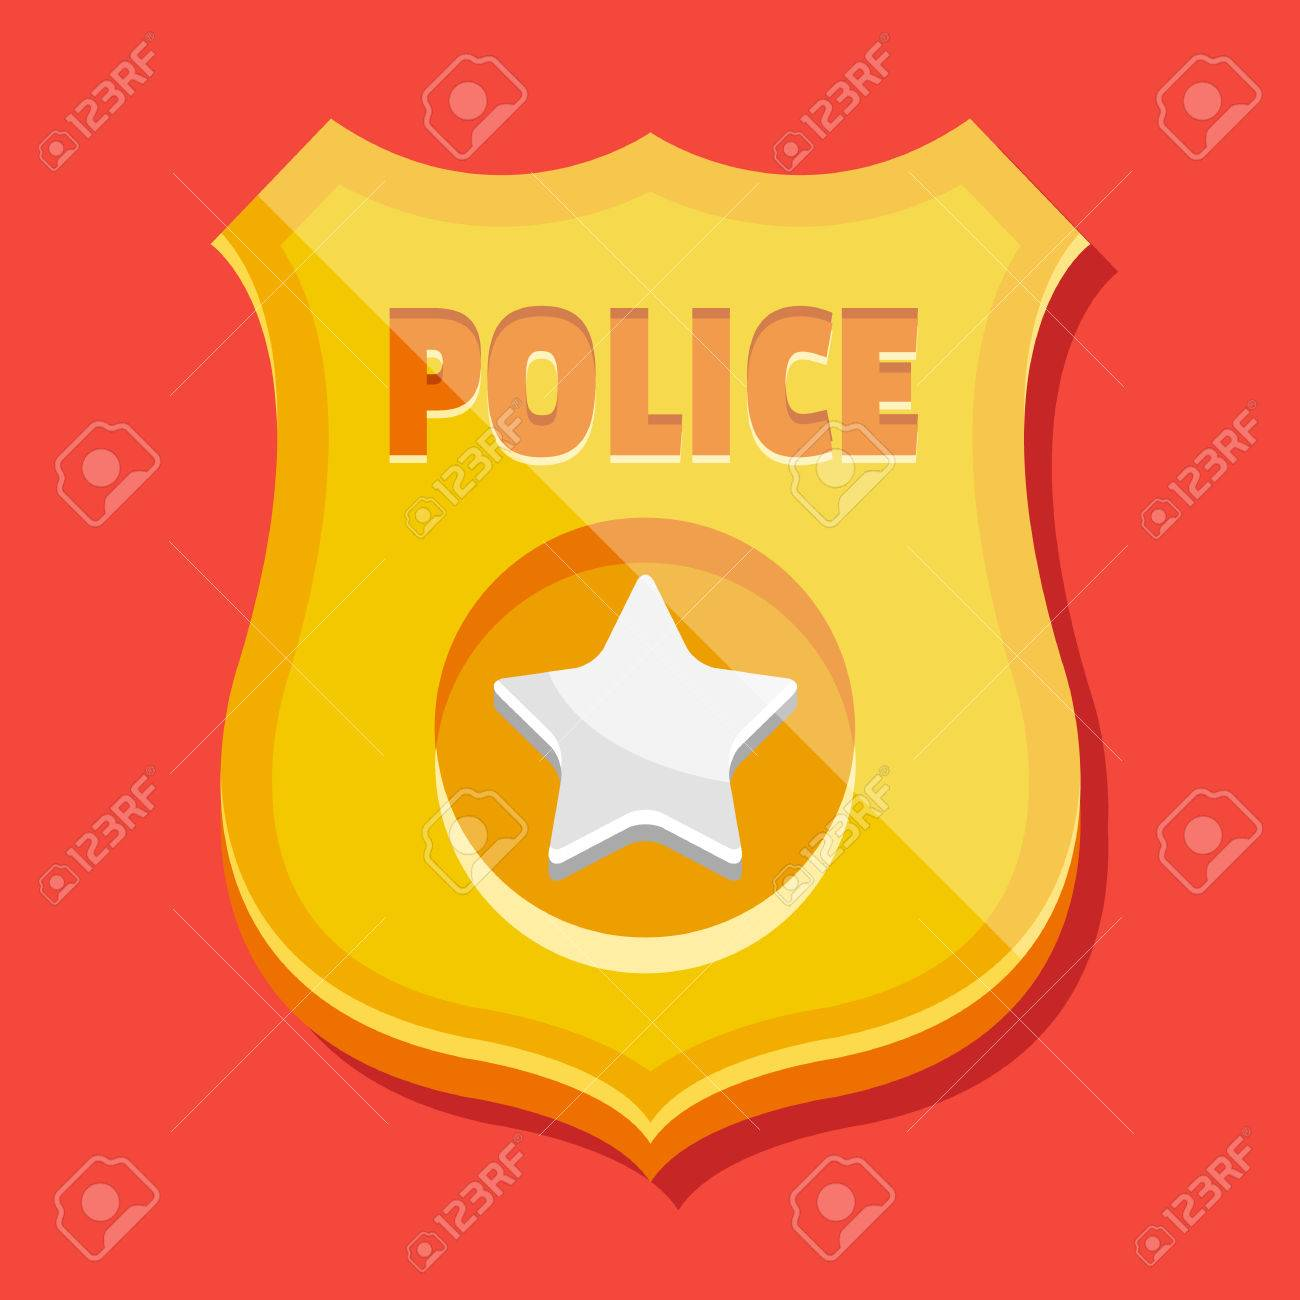 police application stock photos royalty free police application